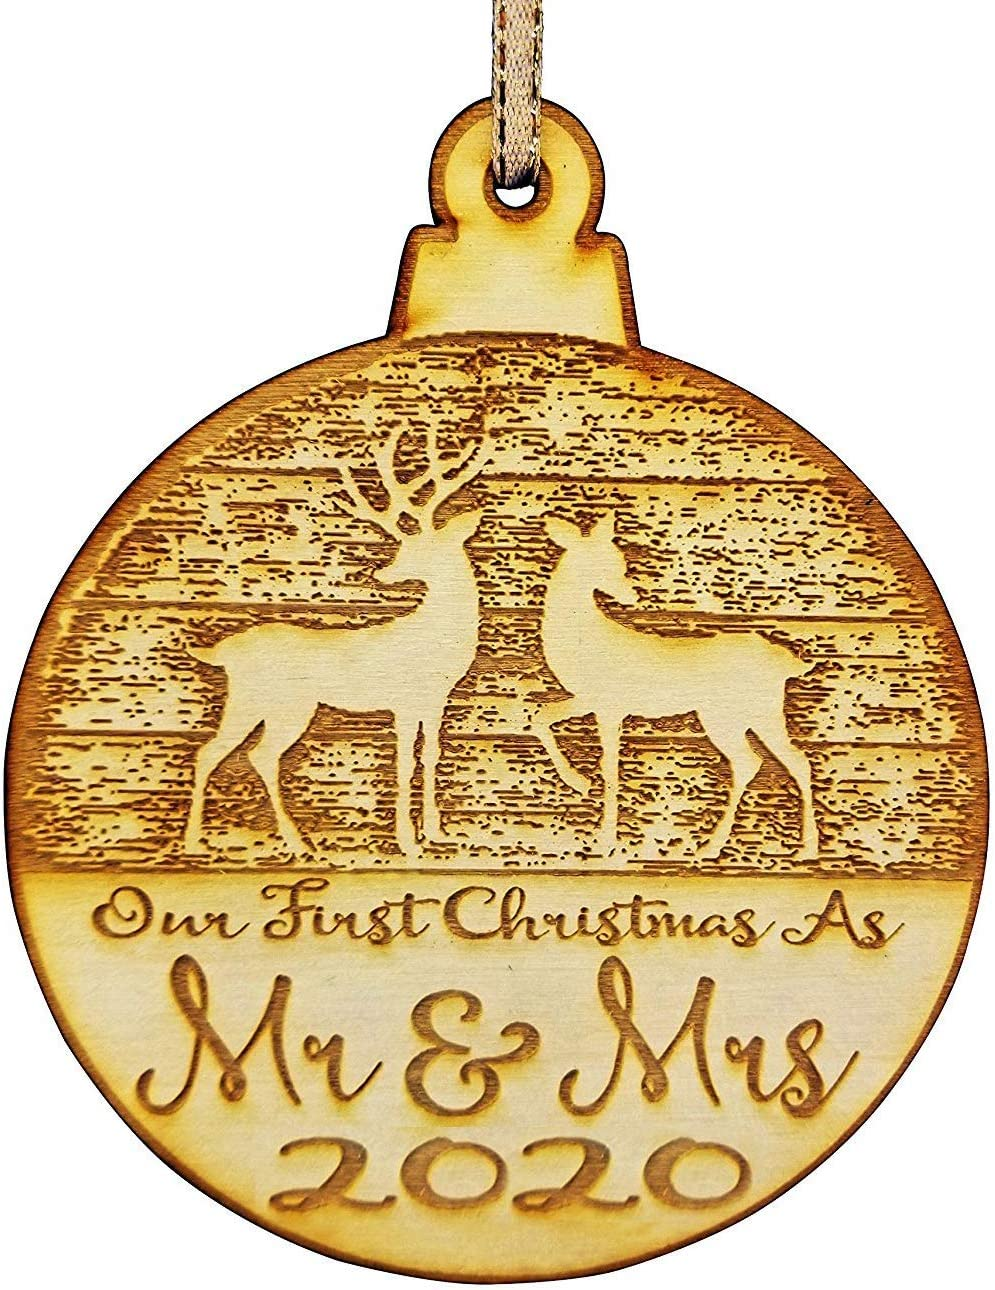 Wedding Collectibles Our First Christmas Ornament (2020) Mr. and Mrs. Couples Tree Hanger | Vintage Birchwood Craftsmanship | Classic Collectible Keepsakes & Heirlooms